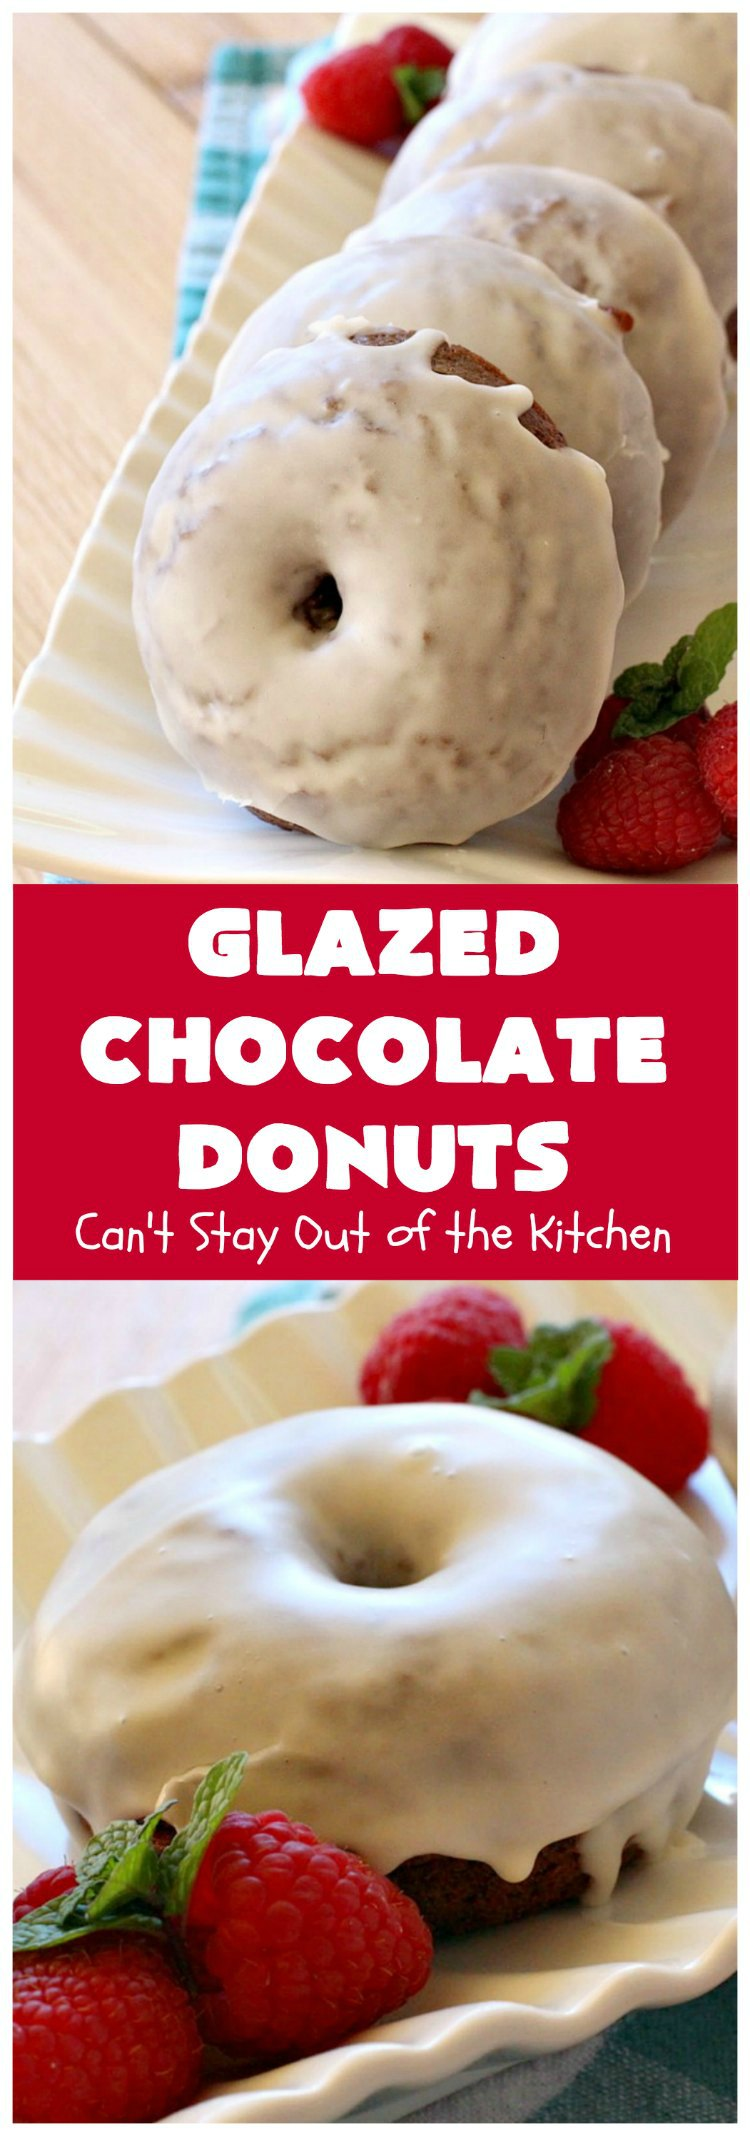 Glazed Chocolate Donuts | Can't Stay Out of the Kitchen